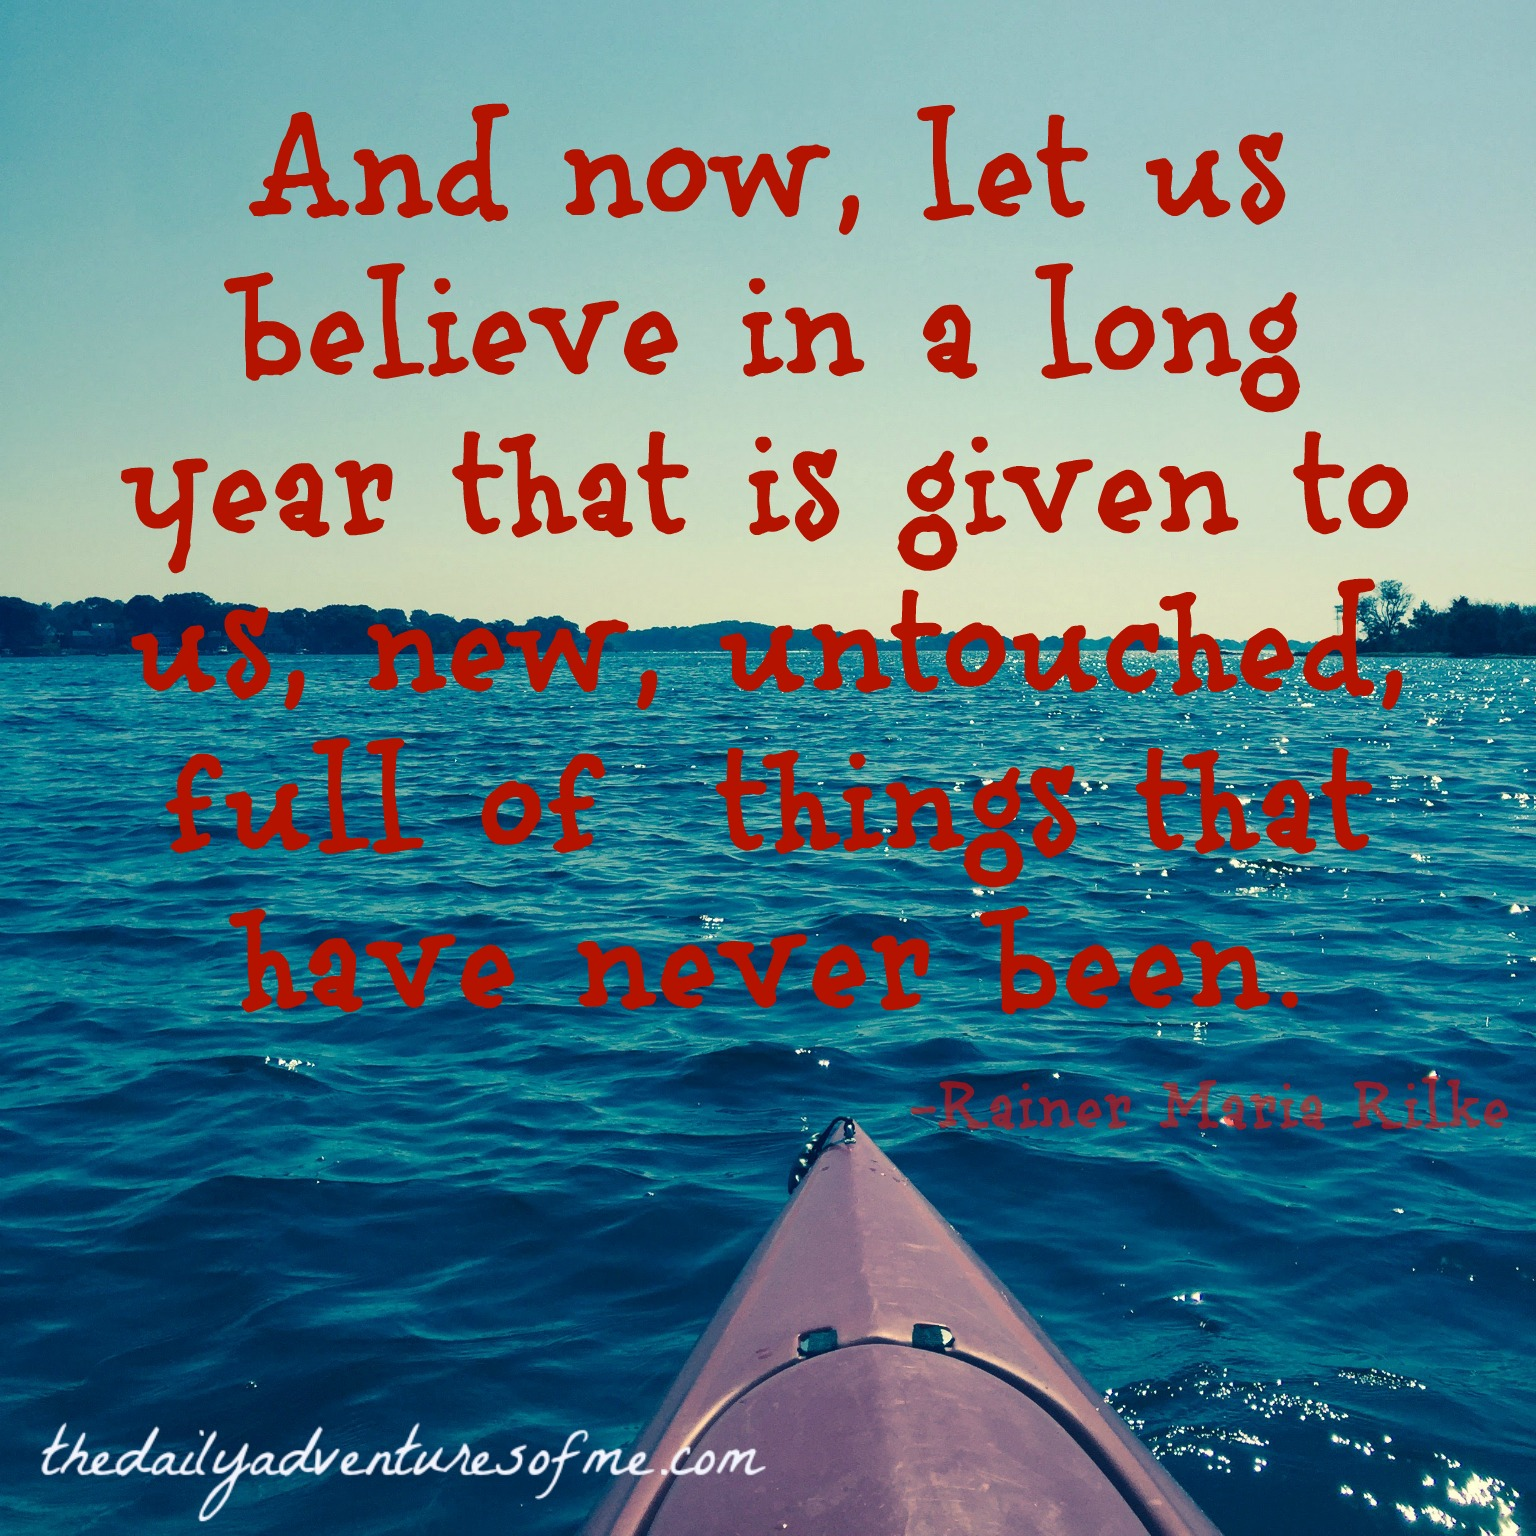 Image of: Wishes Rhode Island Travel Quotes Images Thursday Travel Inspiration Archives The Daily Adventures Of Me Jpg Friendsforphelpscom Rhode Island Travel Quotes